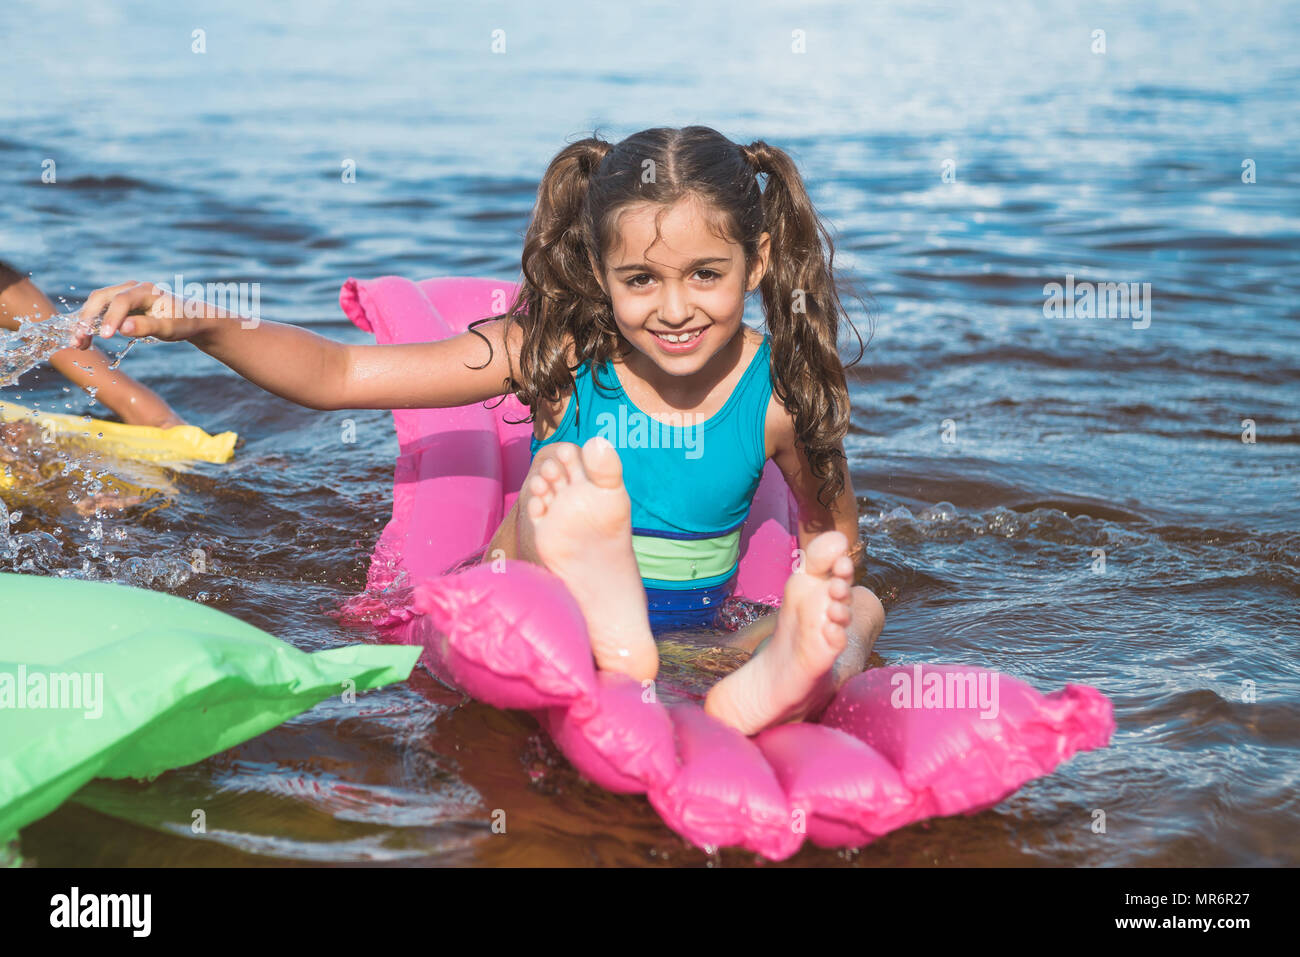 cheerful little girl swimming on inflatable mattresses at sea - Stock Image